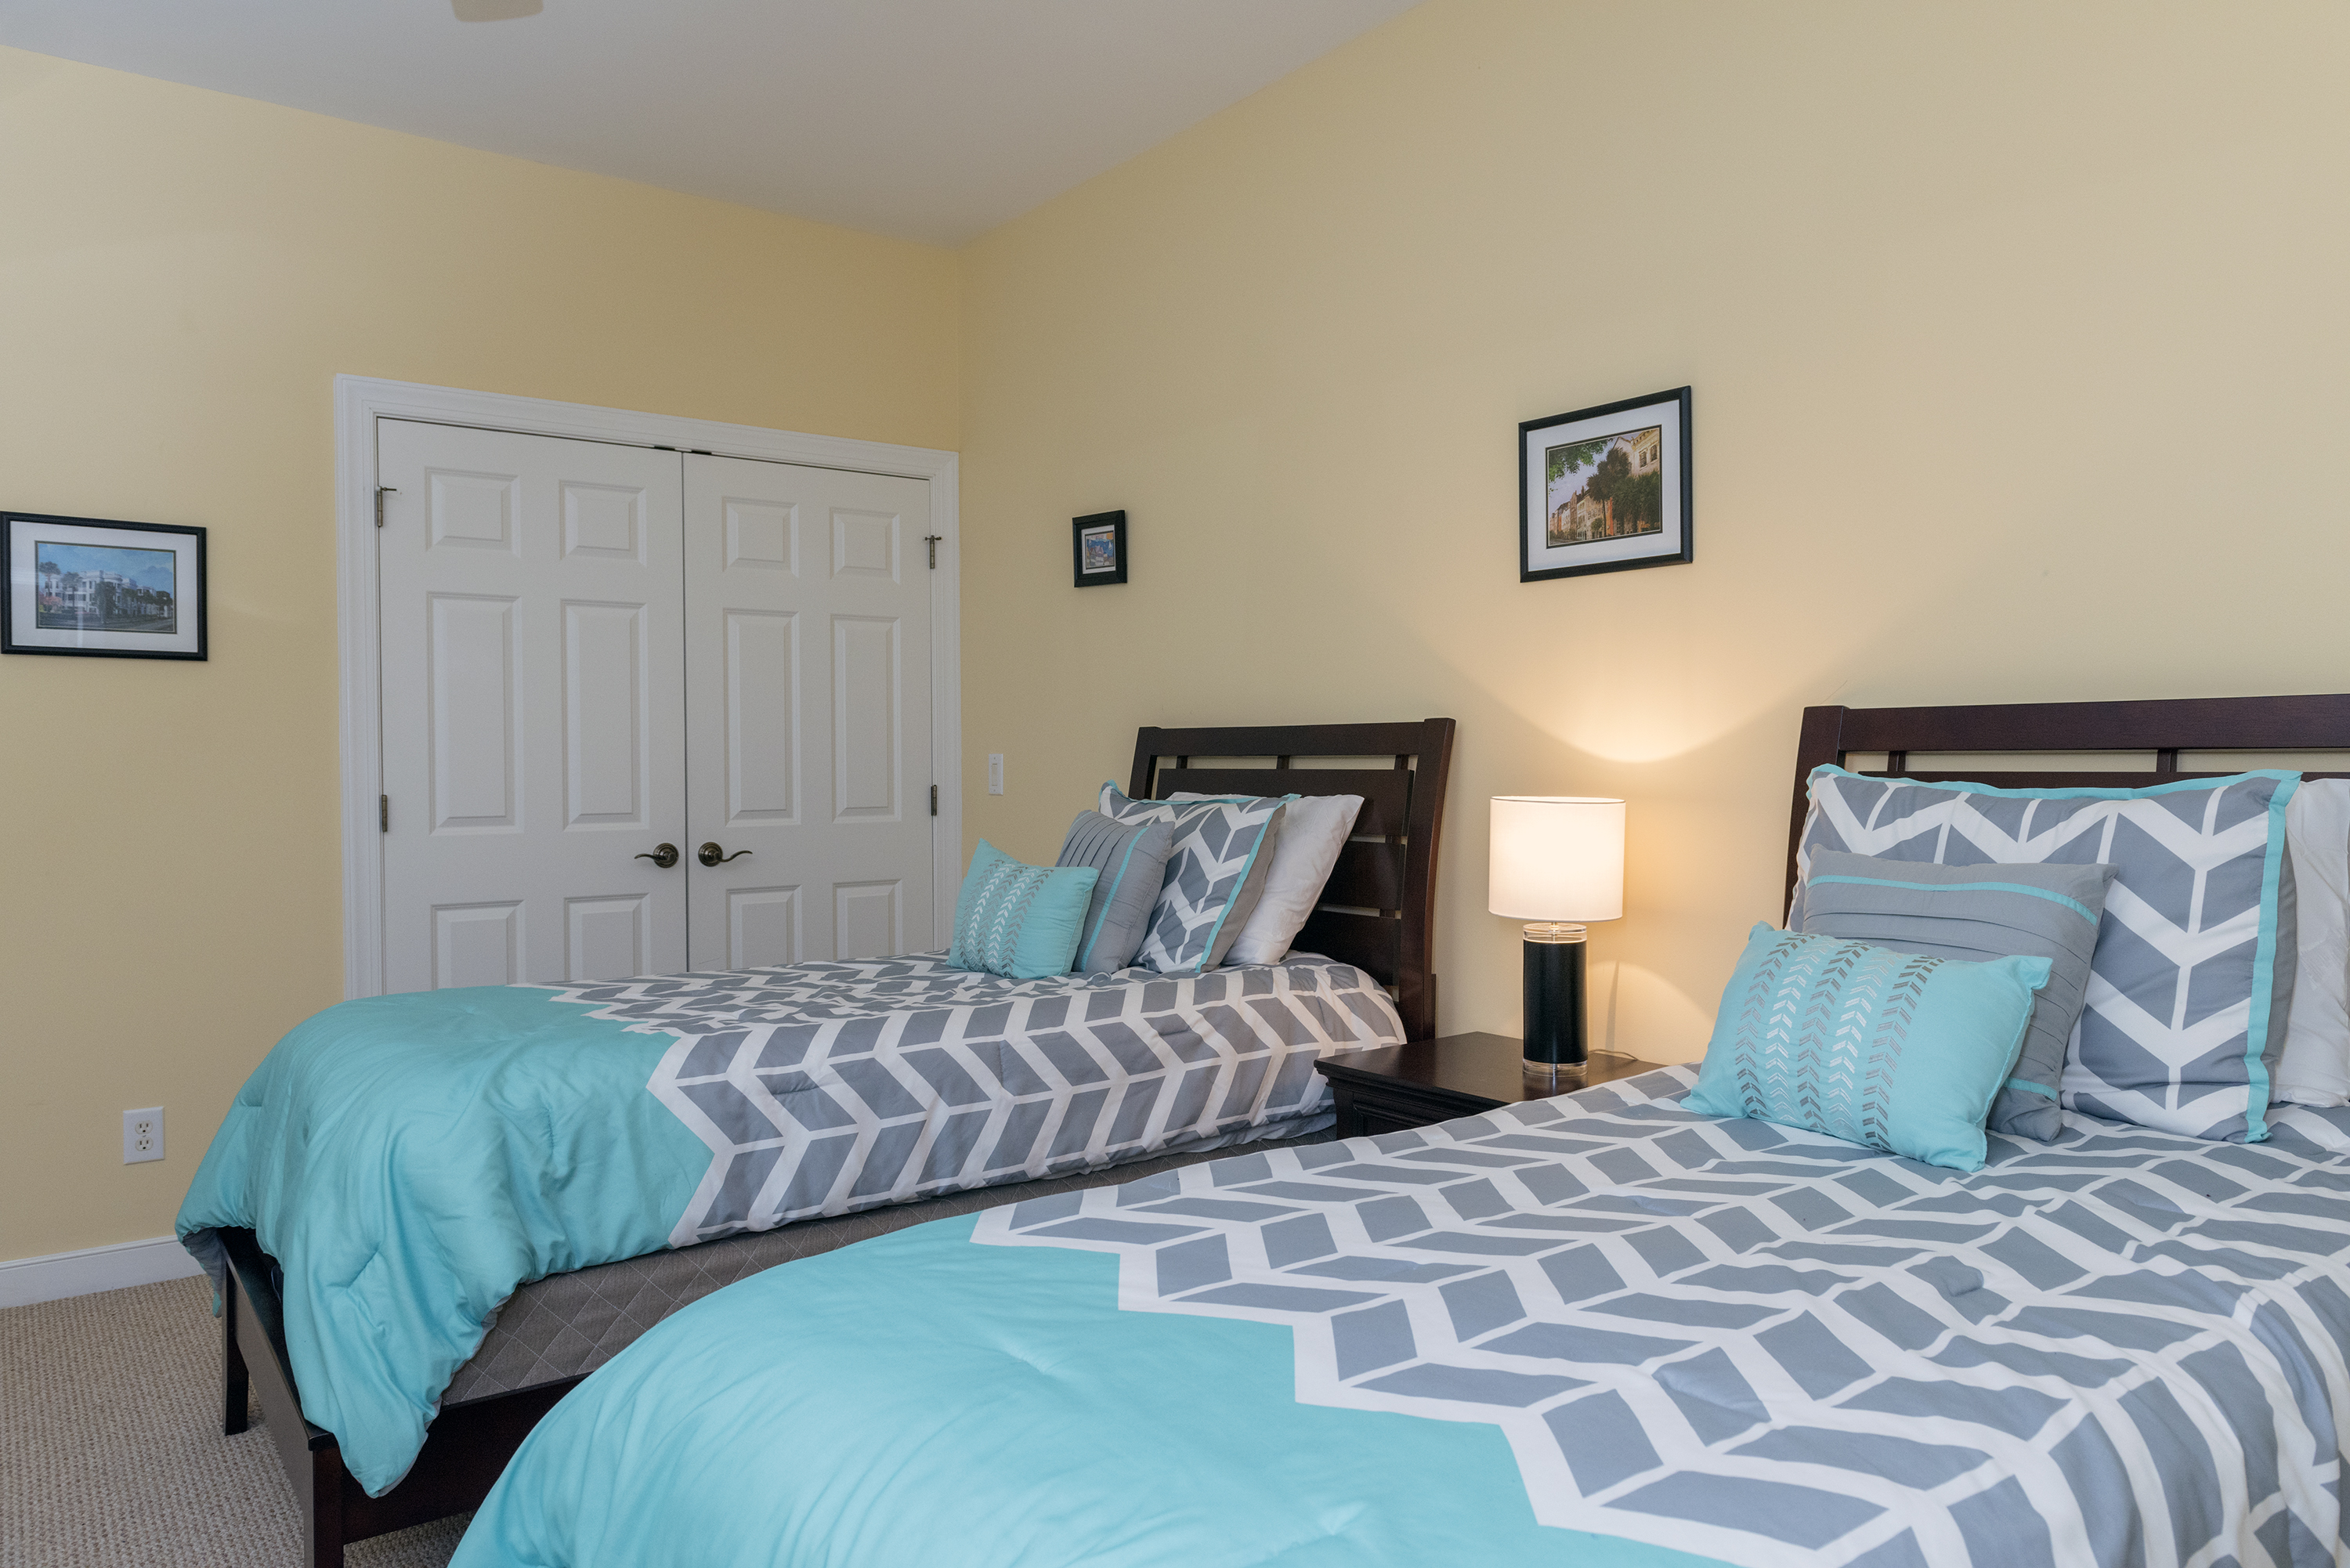 The 4th bedroom has two twins beds and a large closet.